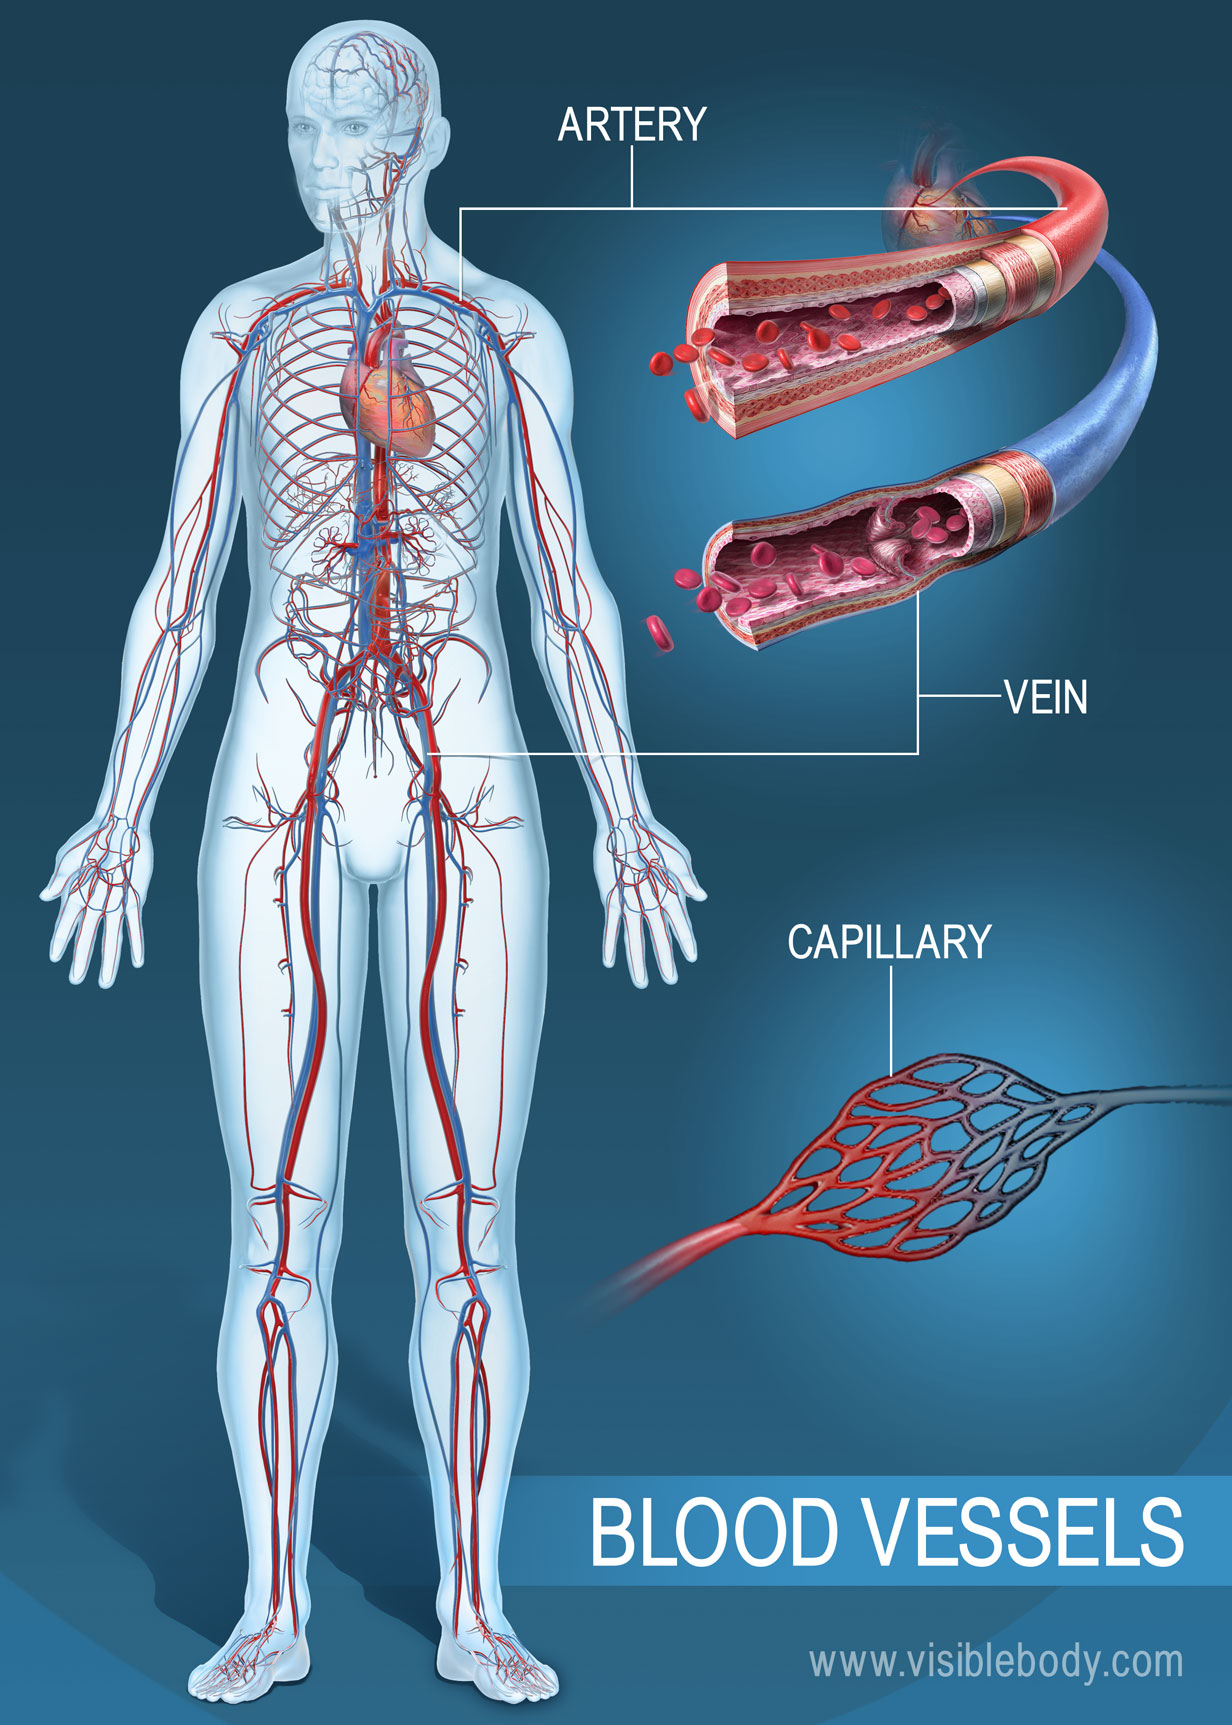 The network of arteries, veins and capillaries throughout the body